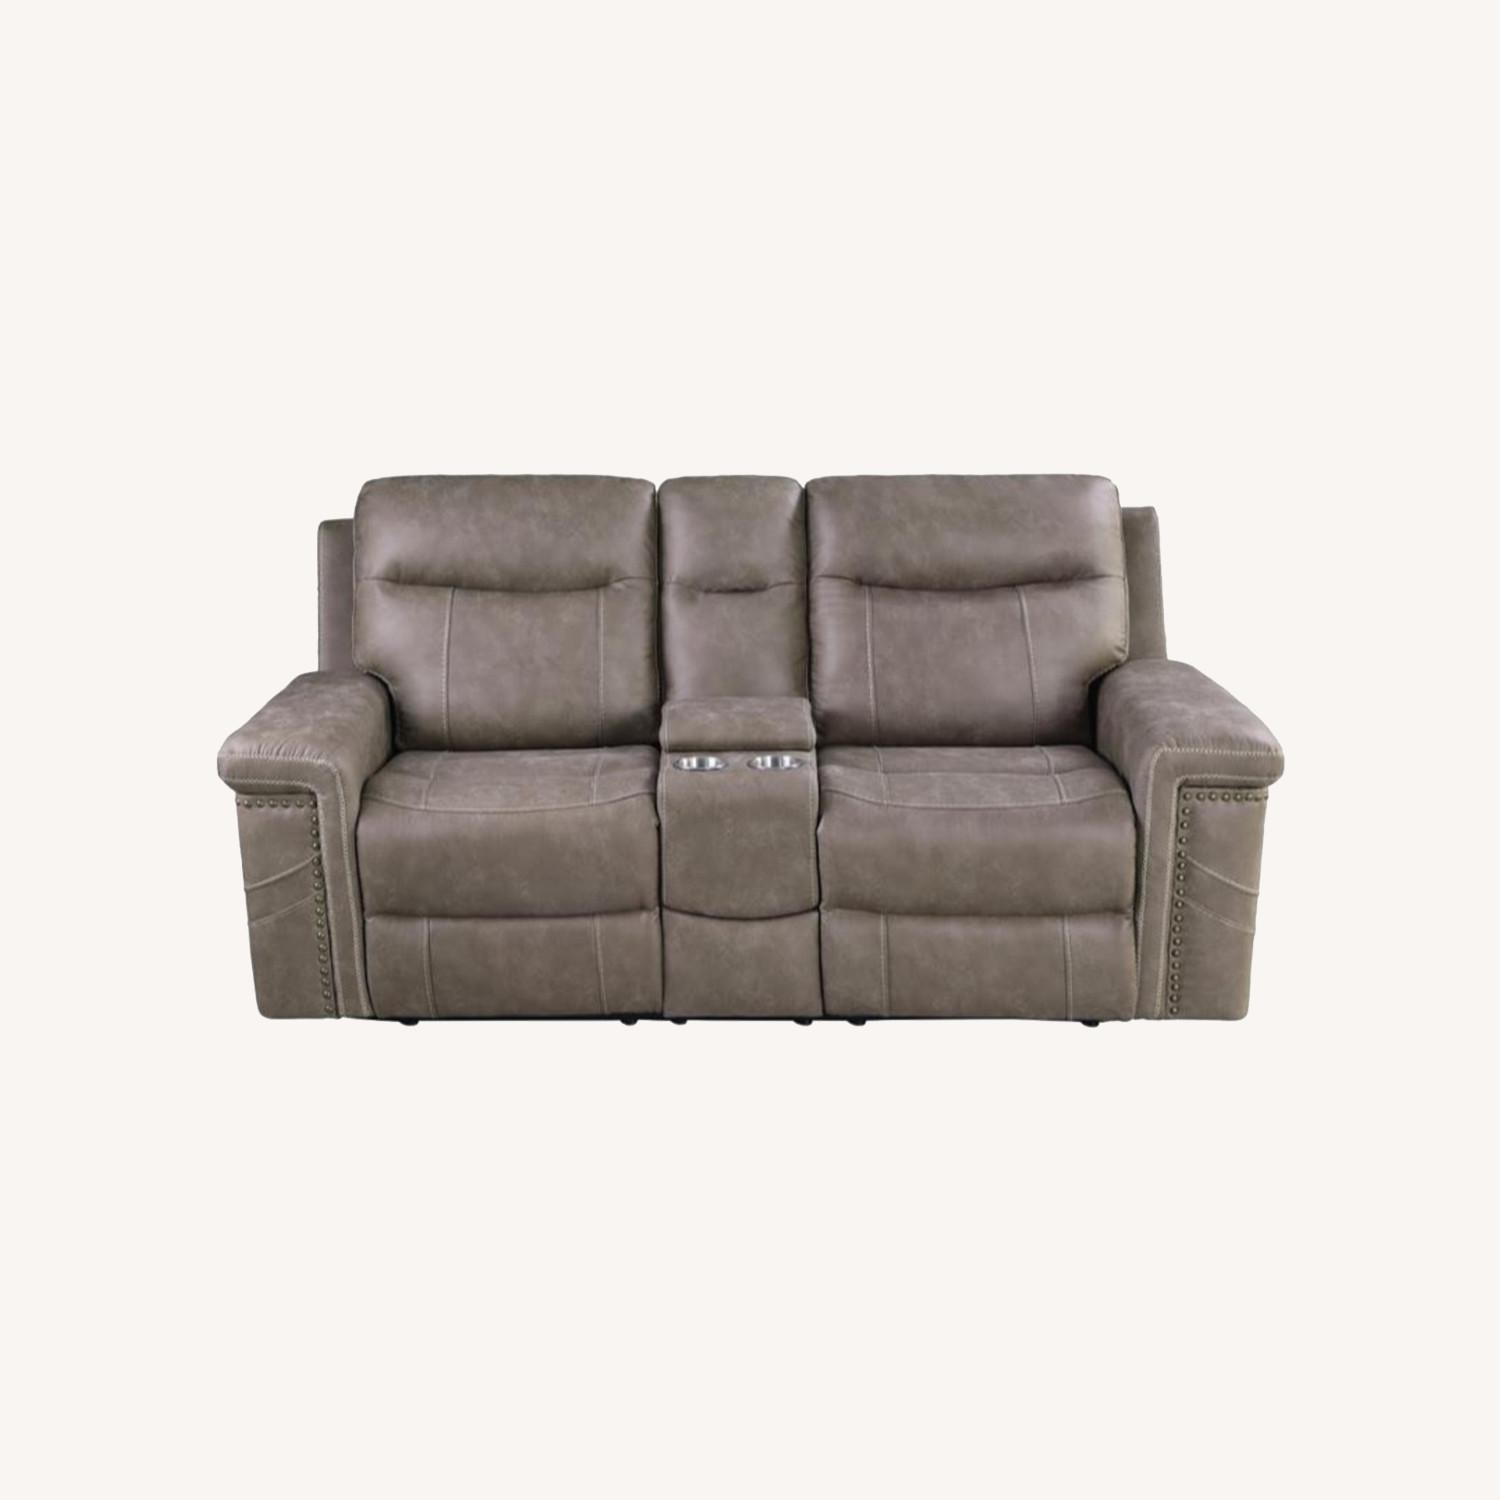 Power Loveseat Recliner In Taupe Upholstery - image-18